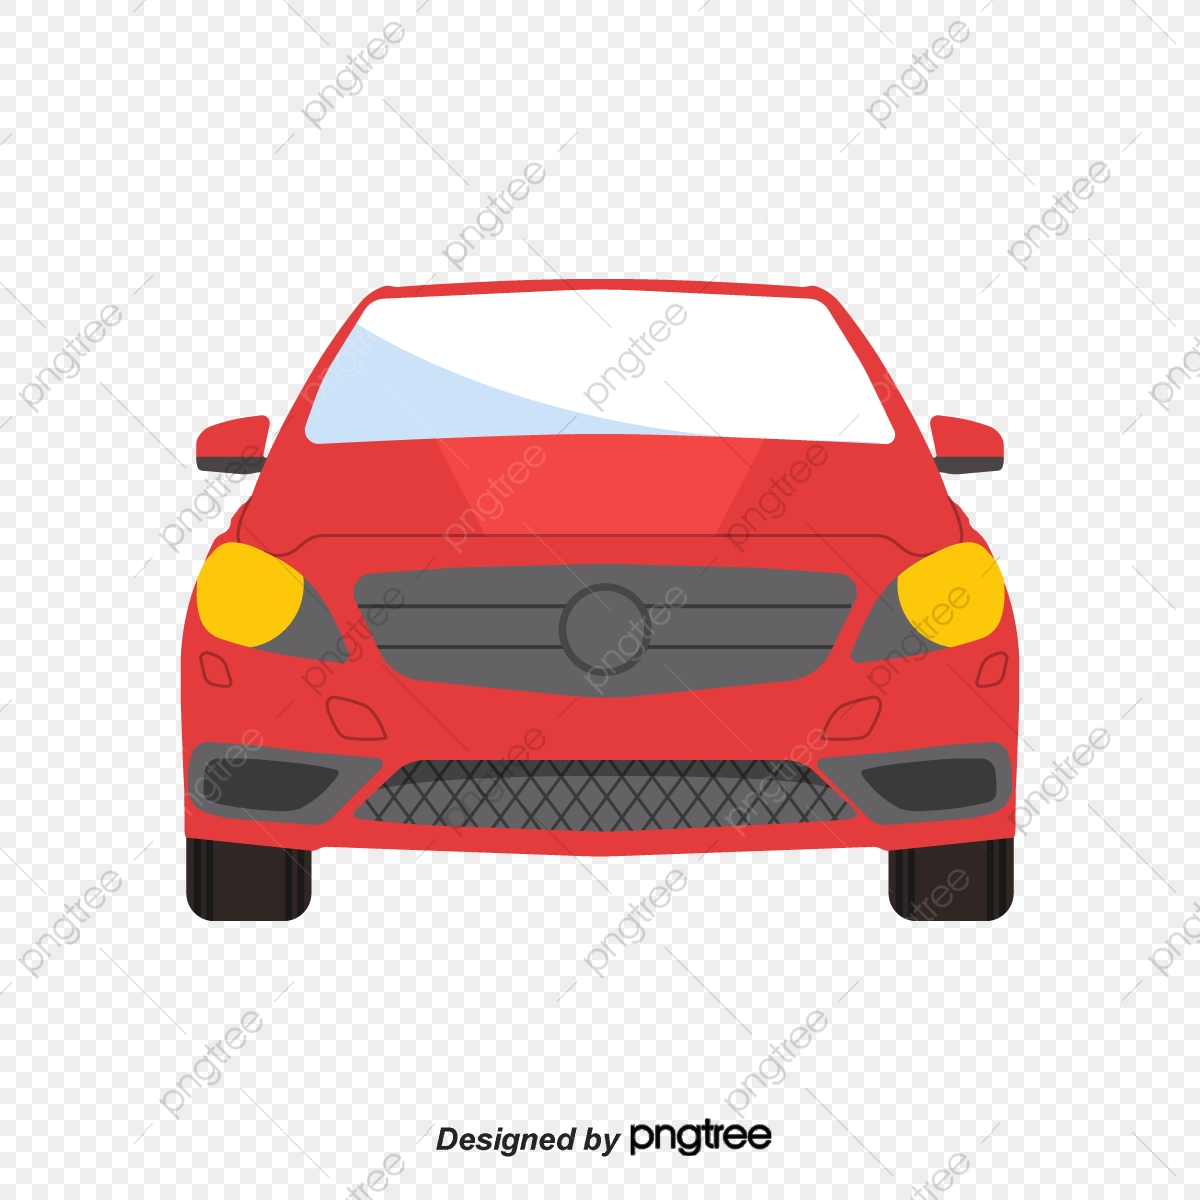 Cartoon Red Face Map Car Vehicle Cartoon Running Png And Vector With Transparent Background For Free Download